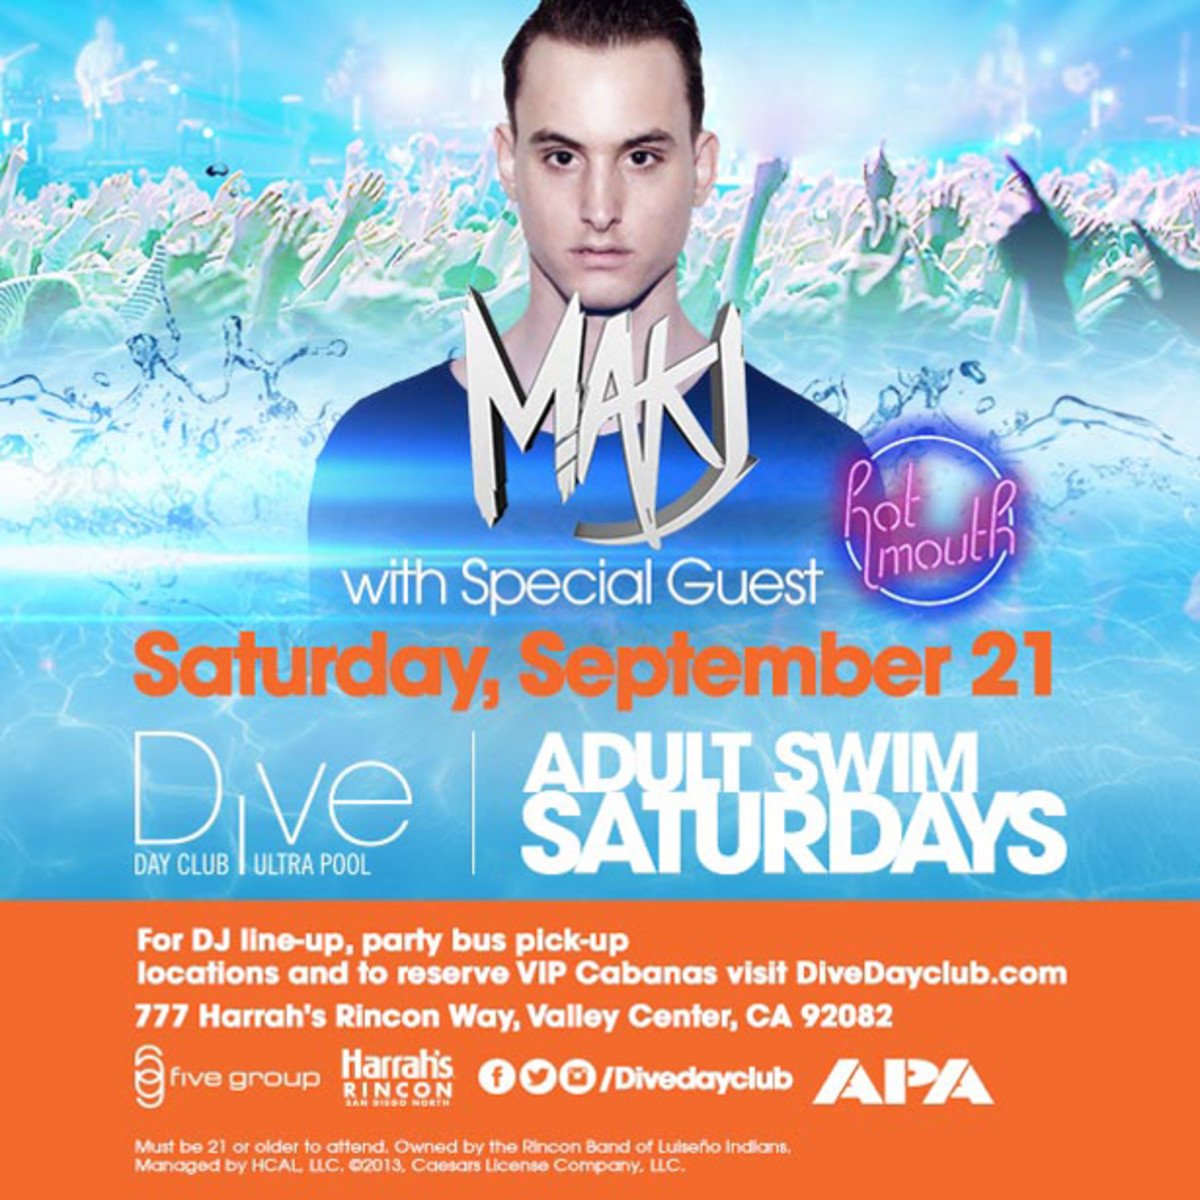 EDM Culture - San Diego Events This Weekend With MAKJ, Hot Mouth, AutoErotique, and the Grande Finale of Intervention!